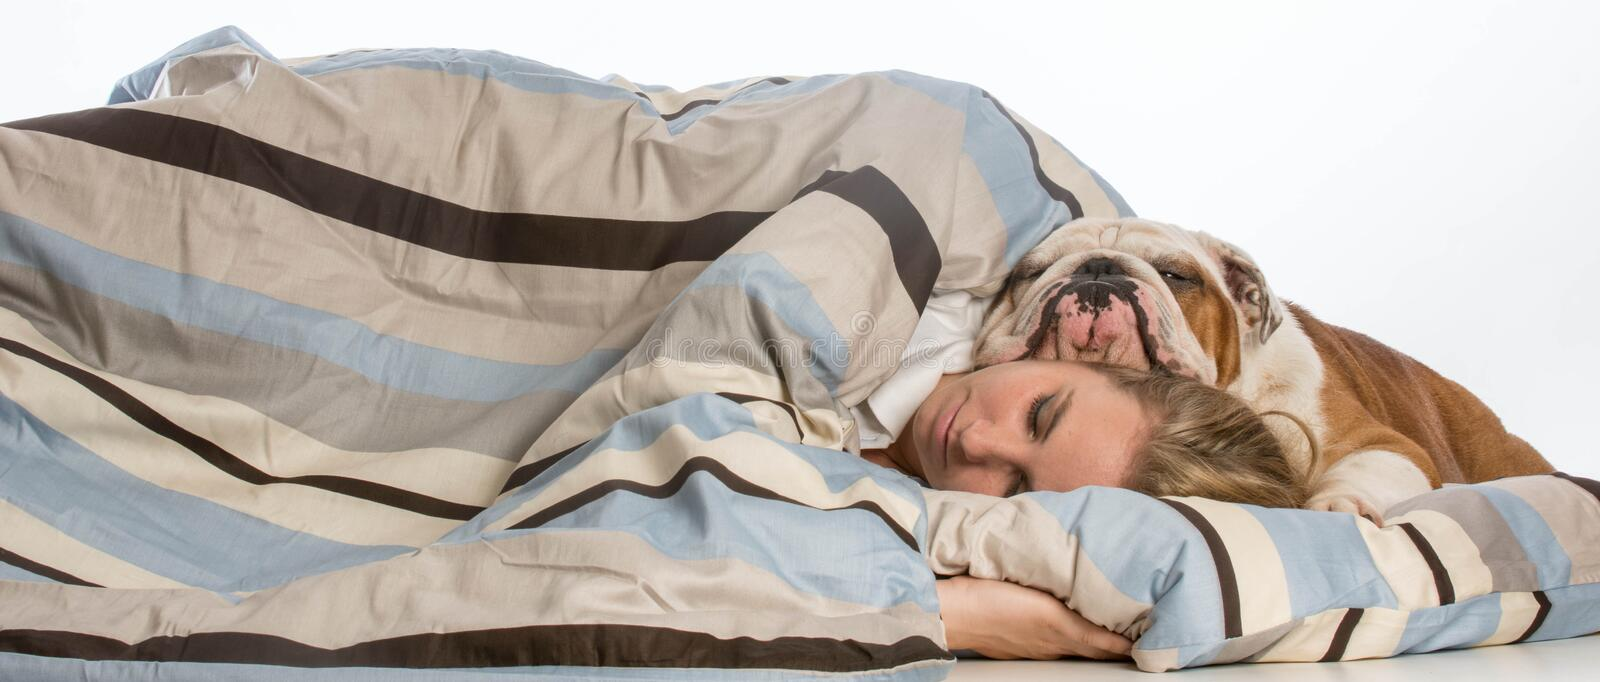 Sleeping with dog royalty free stock photos